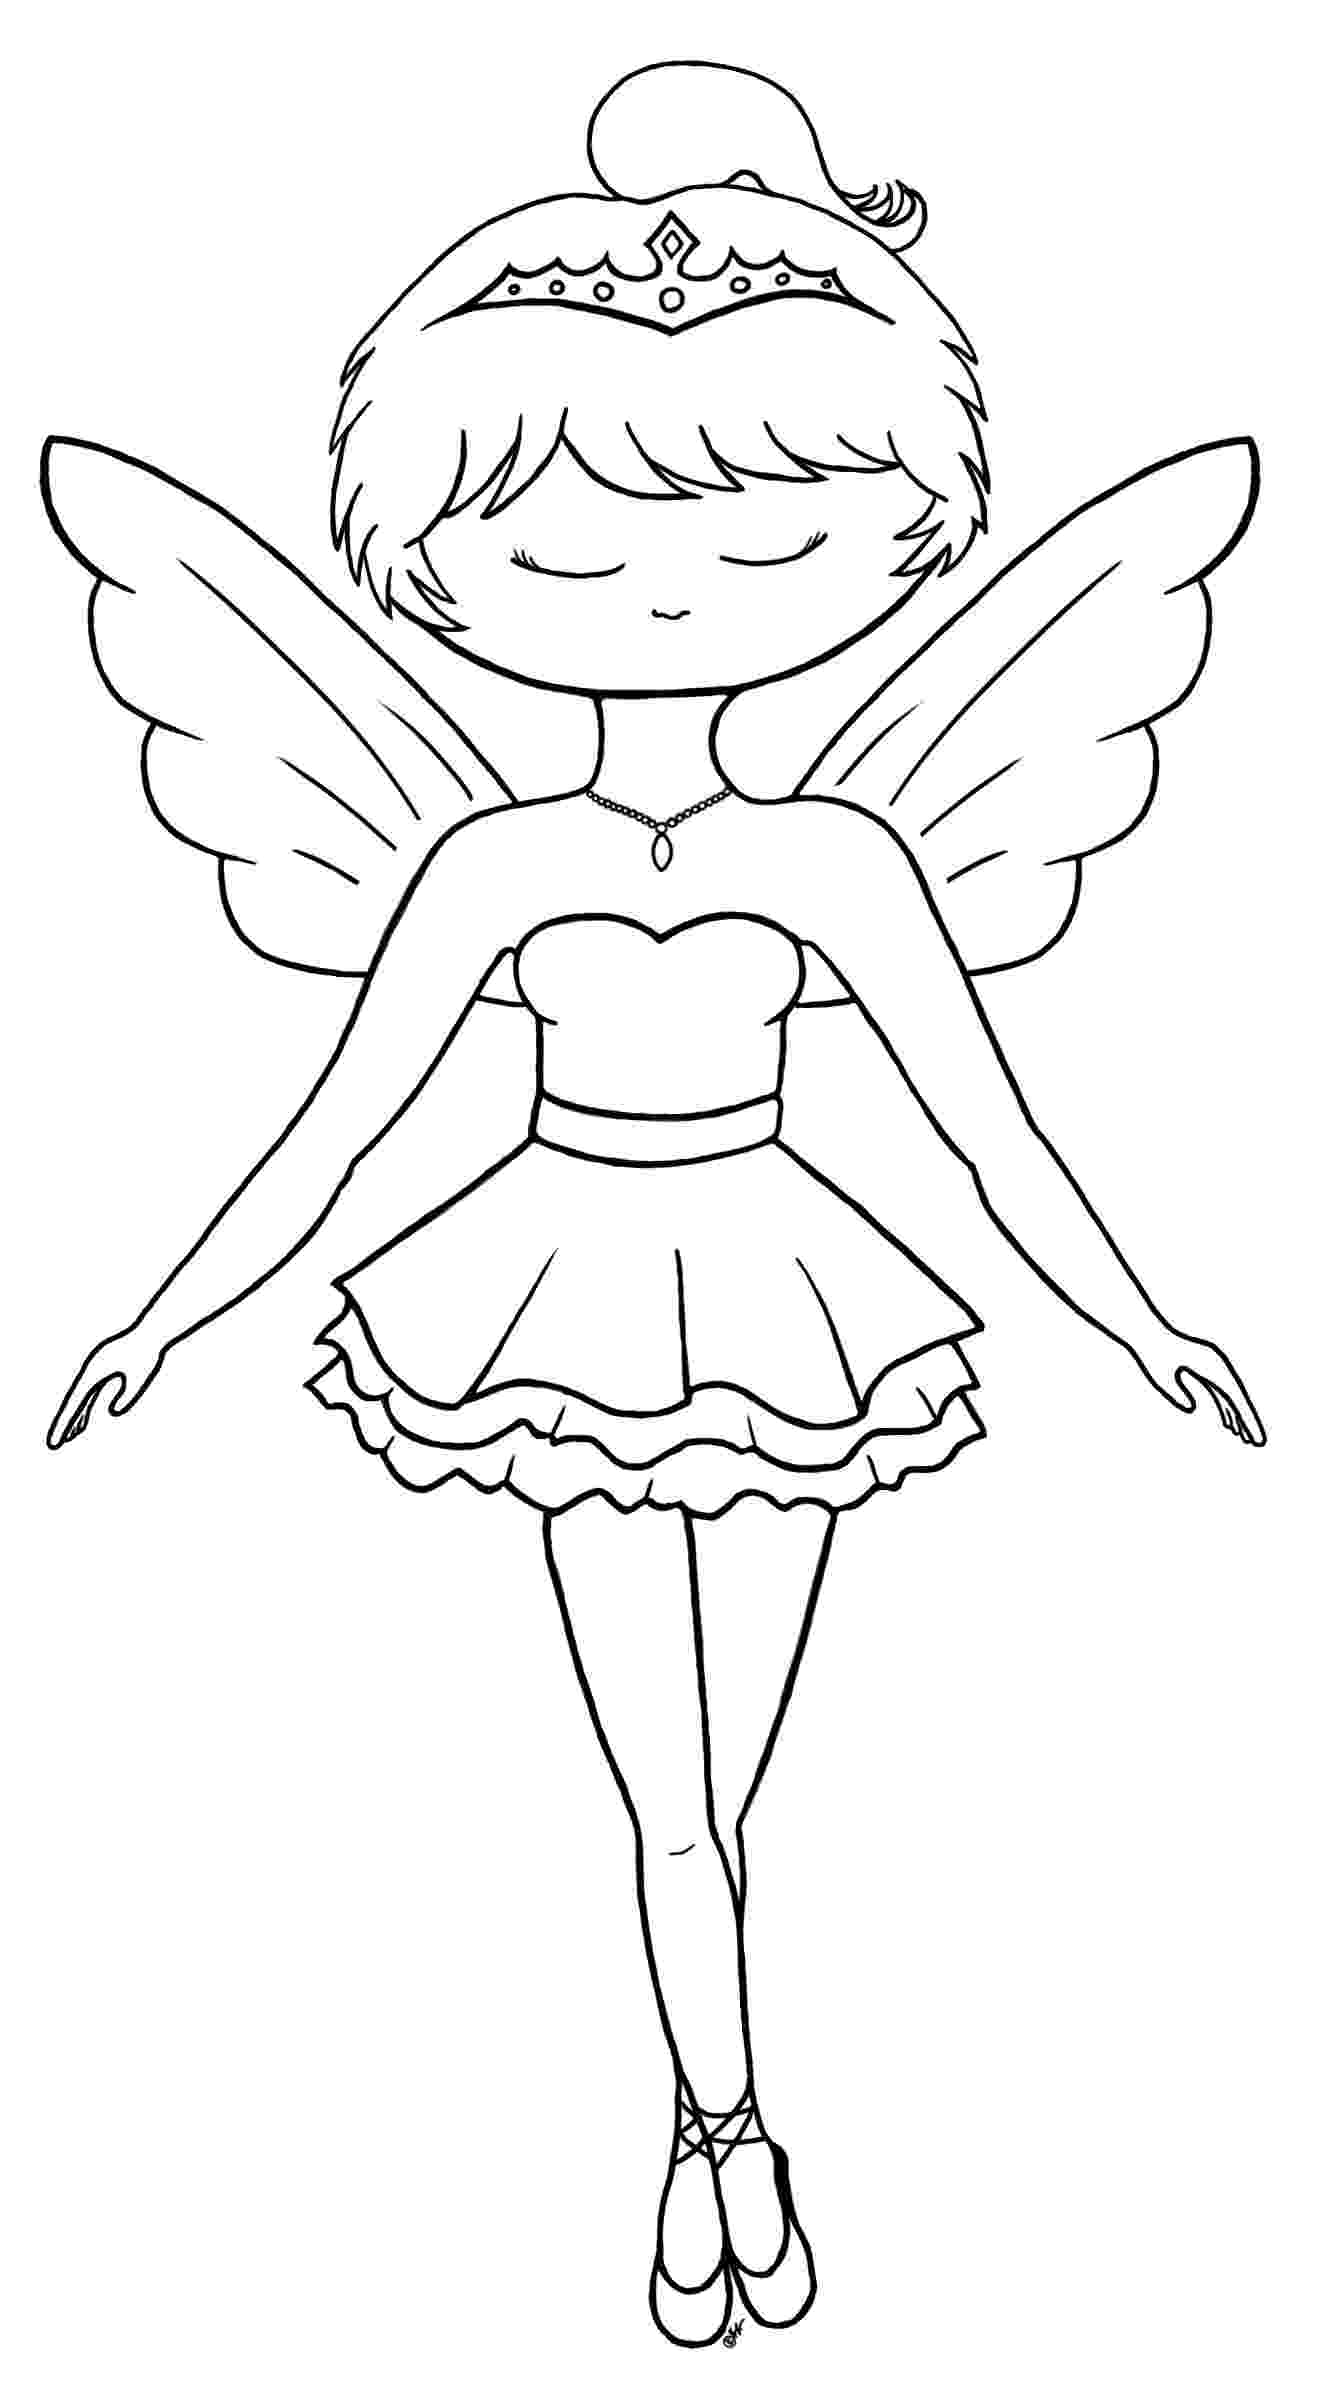 ballerina coloring pages ballerina coloring pages for childrens printable for free pages coloring ballerina